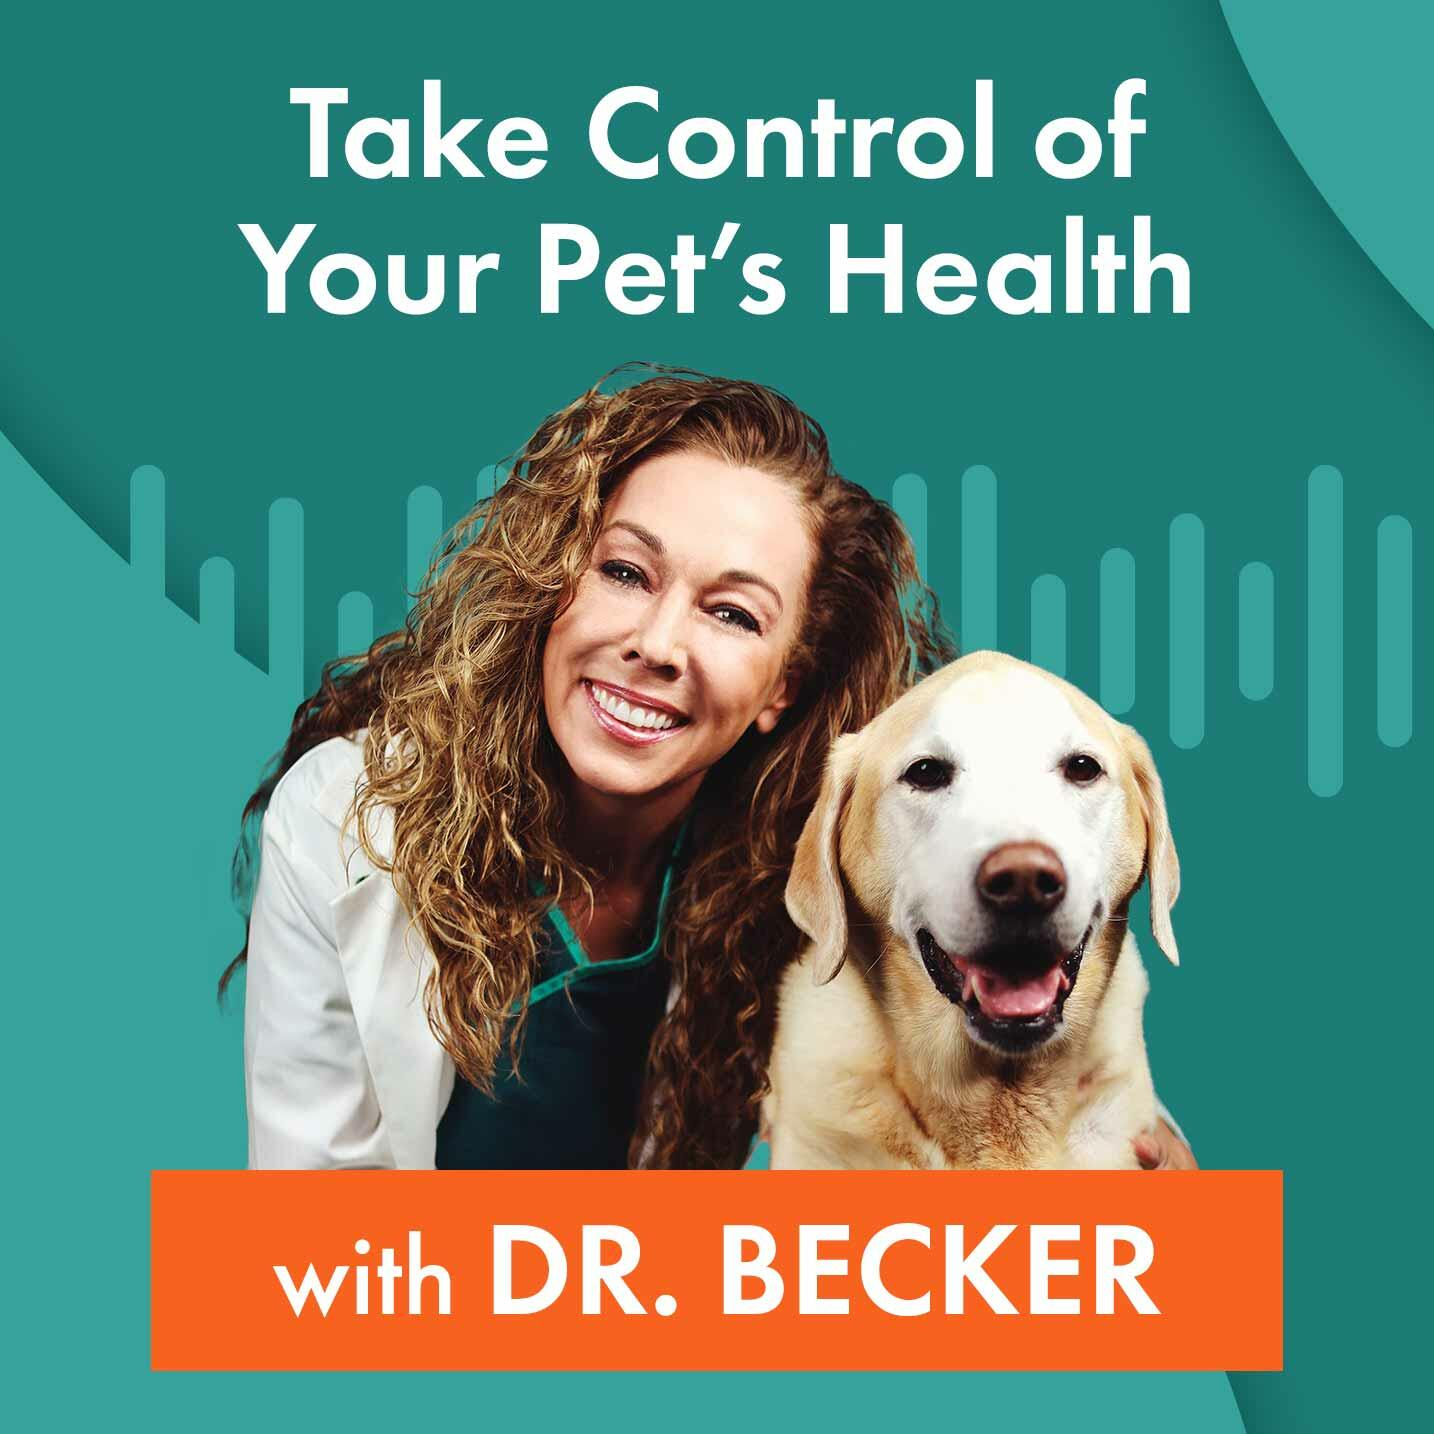 Take Control of Your Pet's Health with Dr. Becker